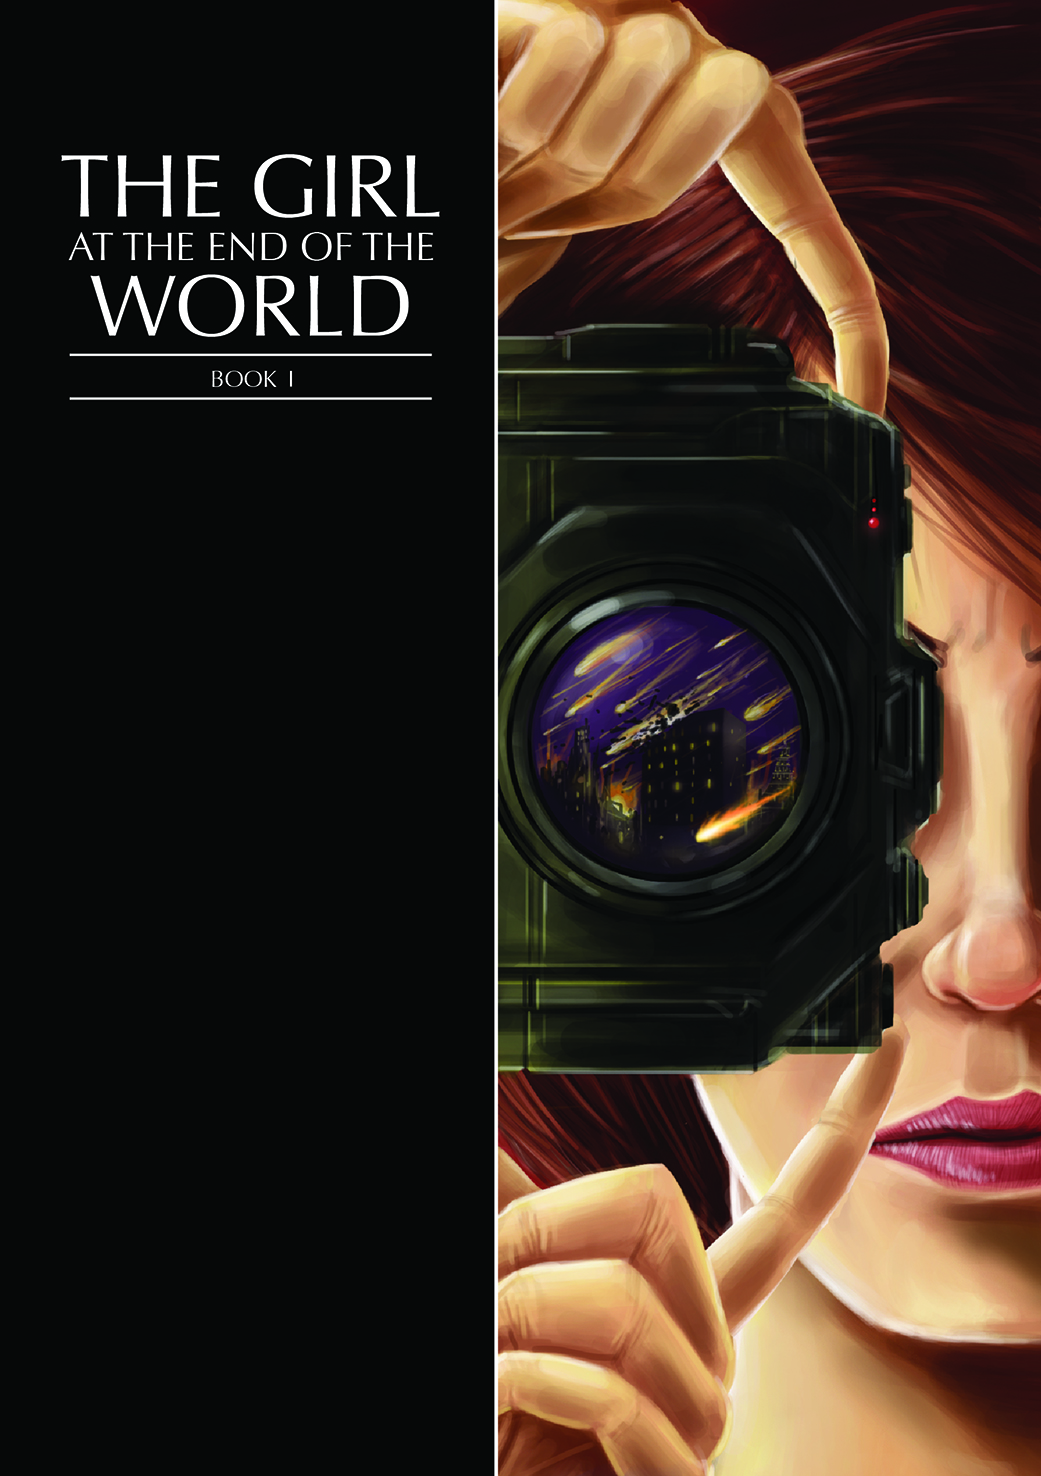 The Girl at the End of the Wold Vol 1 alternate